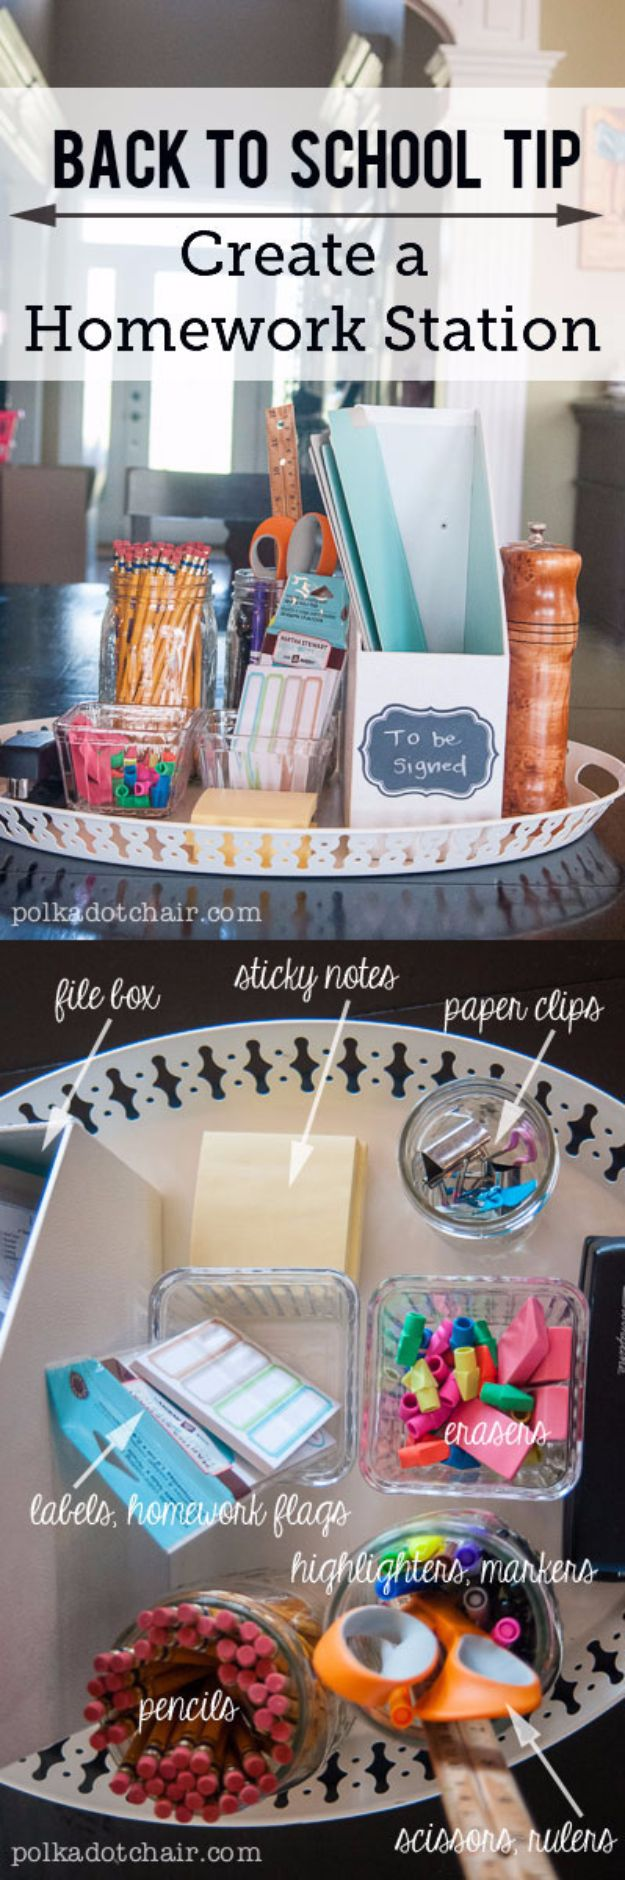 DIY School Supplies - Create A Homework Station - Easy Crafts and Do It Yourself Ideas for Back To School - Pencils, Notebooks, Backpacks and Fun Gear for Going Back To Class - Creative DIY Projects for Cheap School Supplies - Cute Crafts for Teens and Kids http://diyprojectsforteens.com/diy-back-to-school-supplies